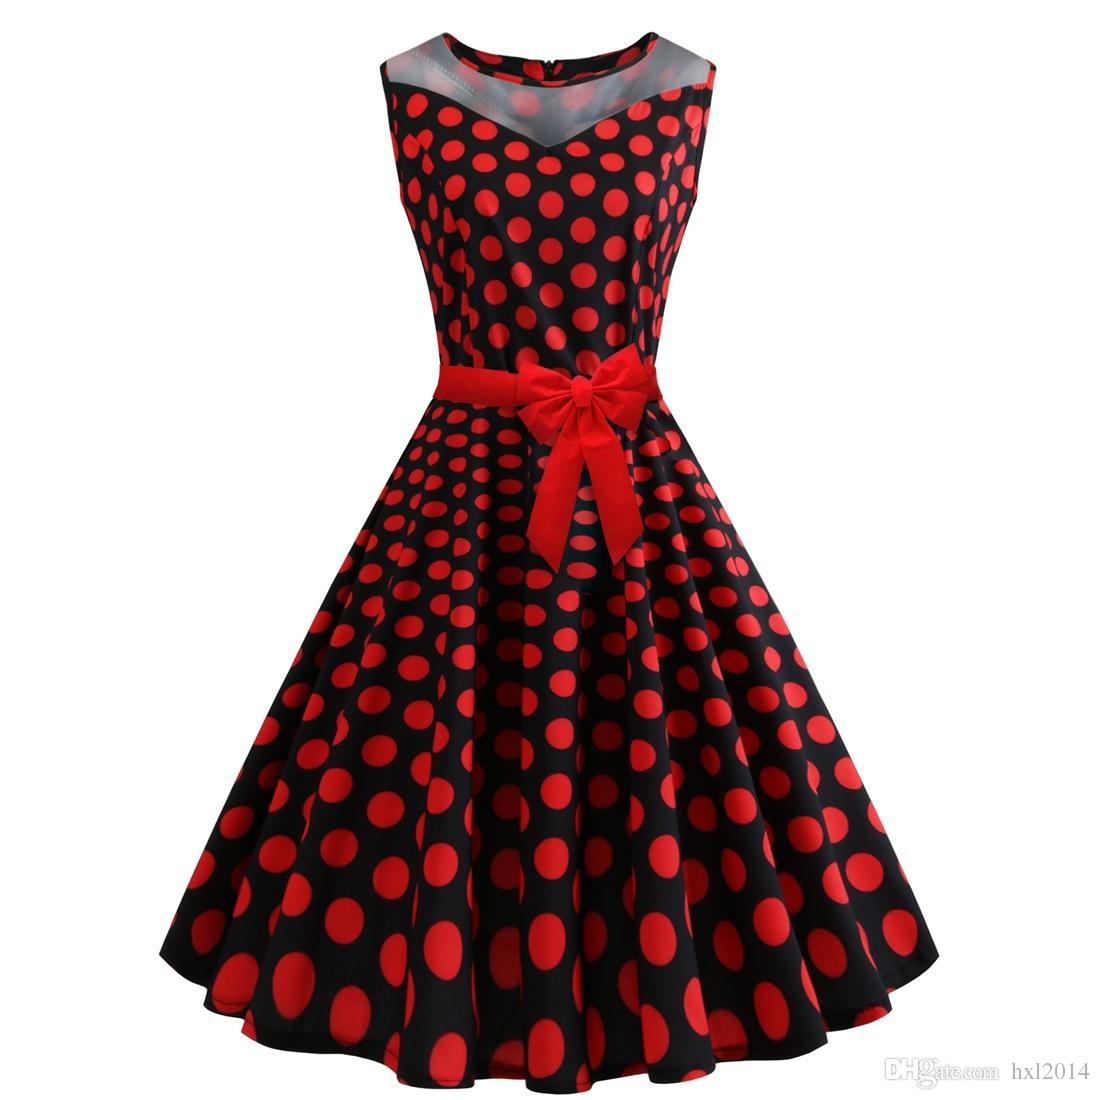 6ce839c38b1fe Women S Clothing 2019 Summer Fashion Plus Size Red Casual Dresses For Womens  Polka Dot Print Sleeveless Vintage Dress Expansion Skirt Black Cocktail  Party ...